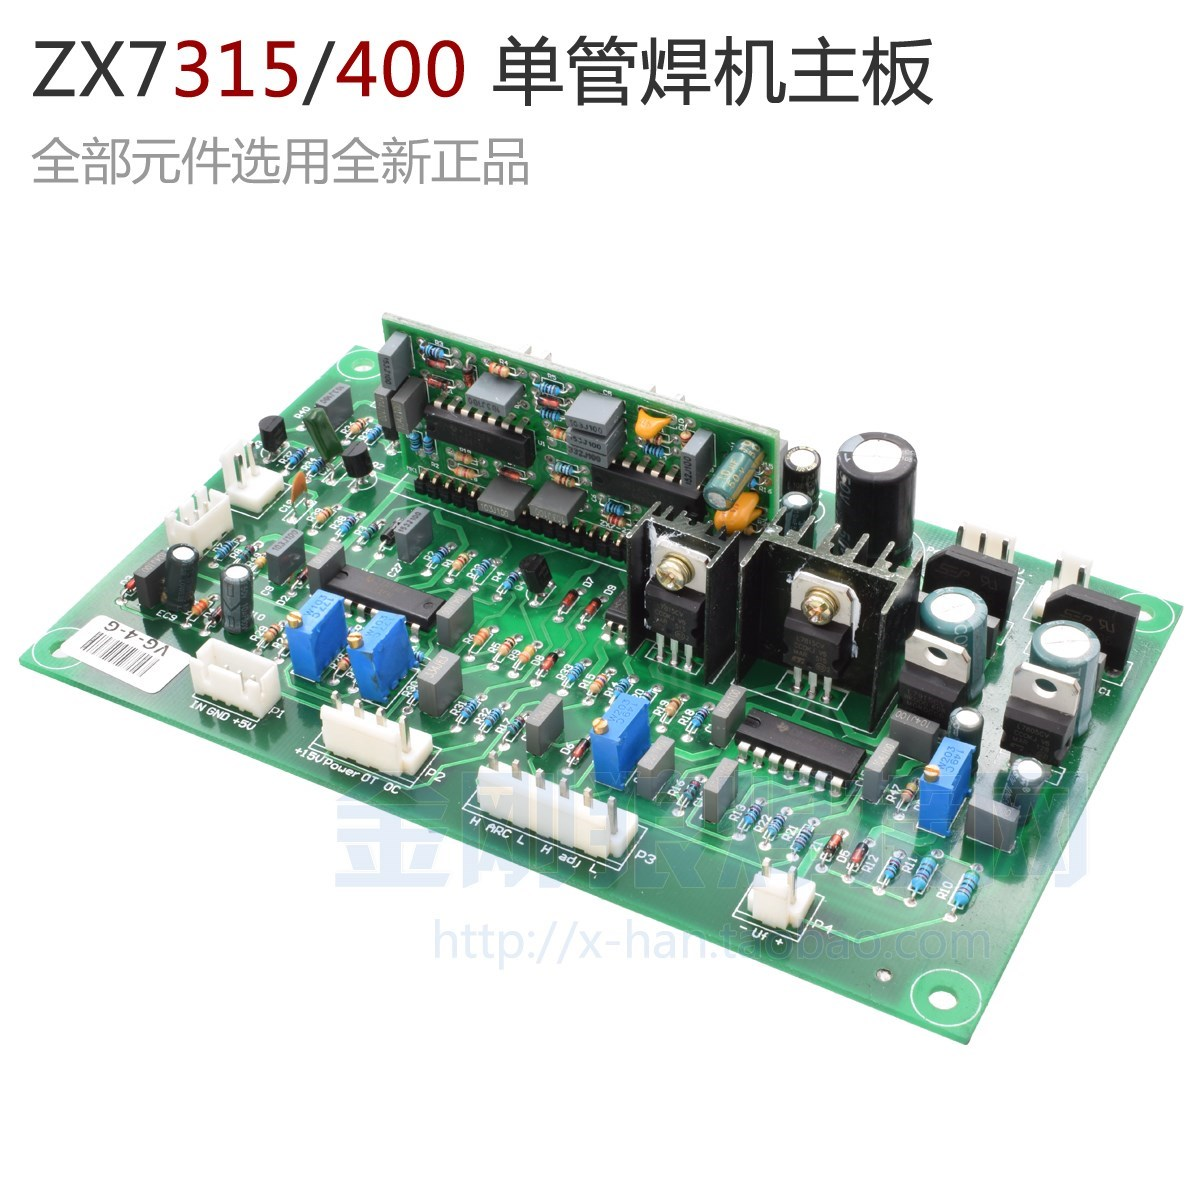 Personal Care Appliance Parts Home Appliance Parts Zx7-400 Single Igbt Welder Control Panel Reallink Section Single Tube Zx7-400 Control Circuit Board At Any Cost